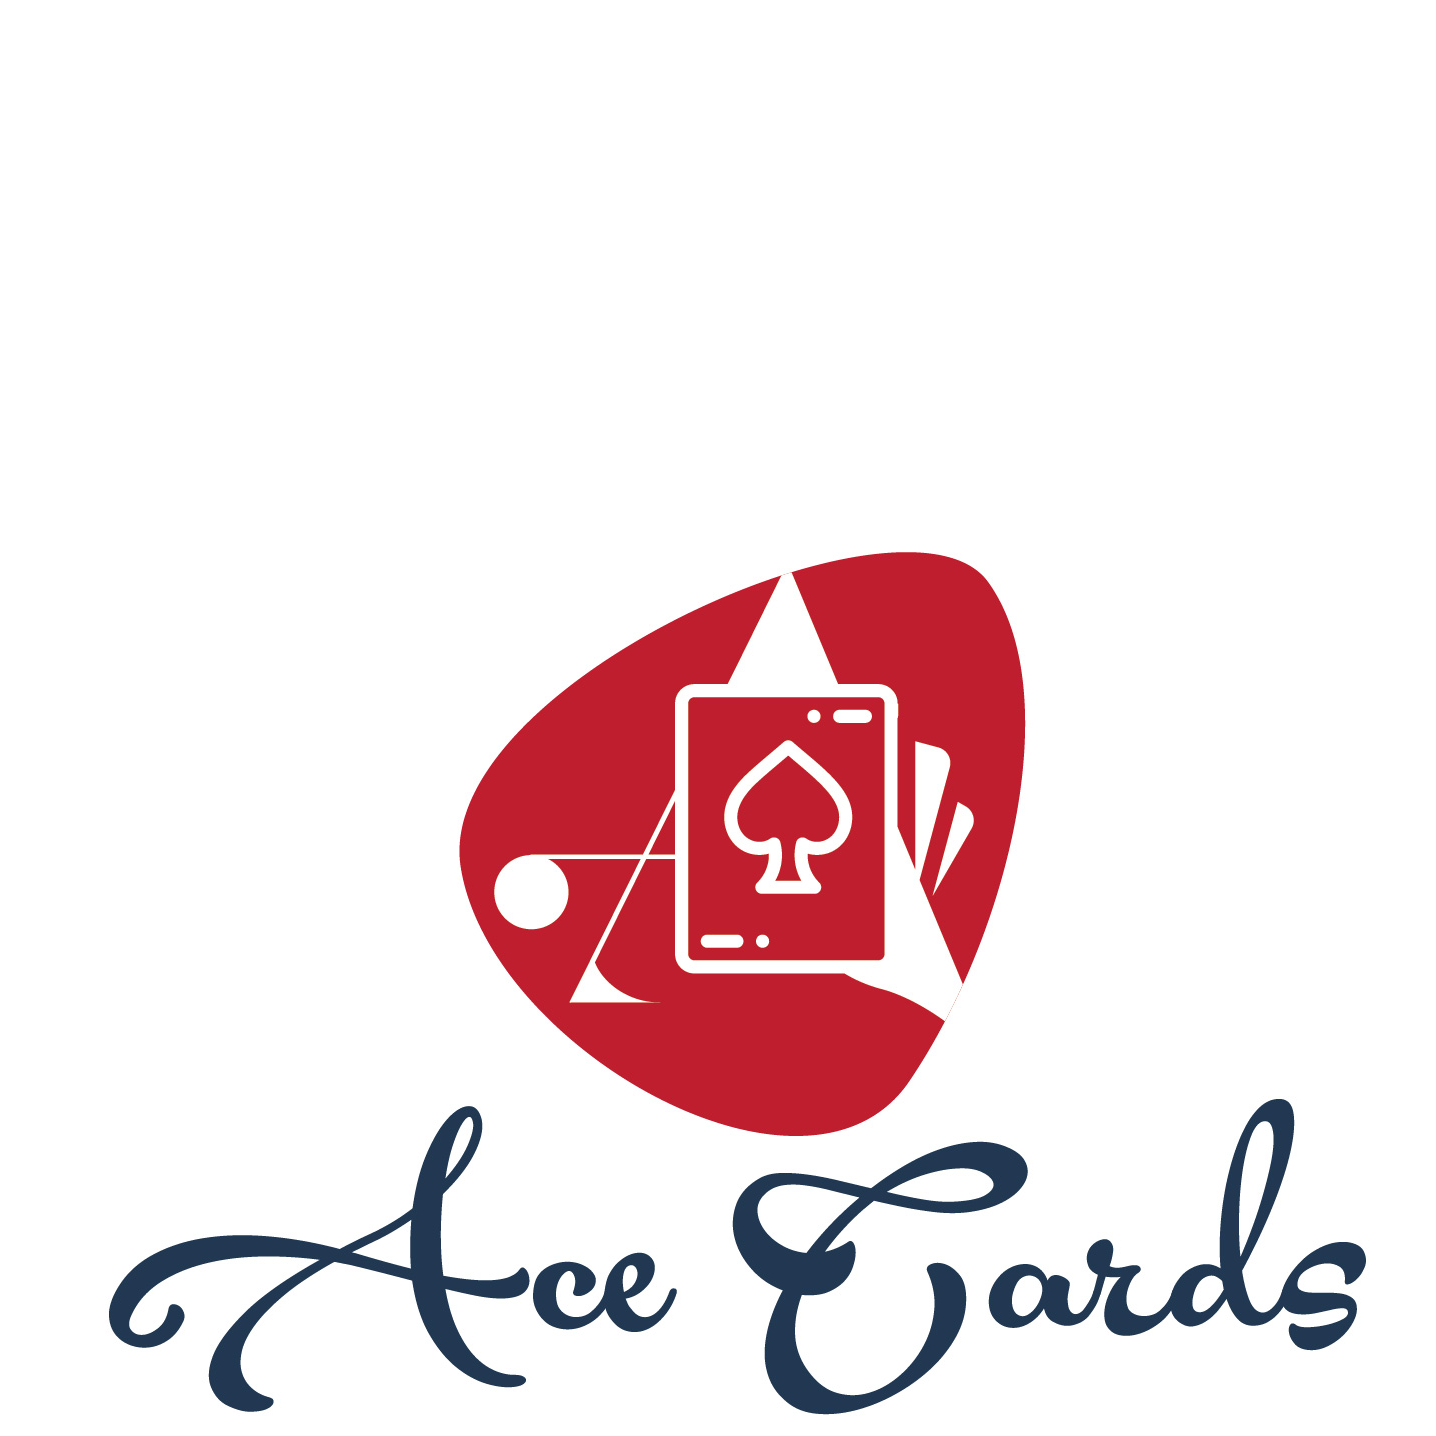 Ace Cards Music